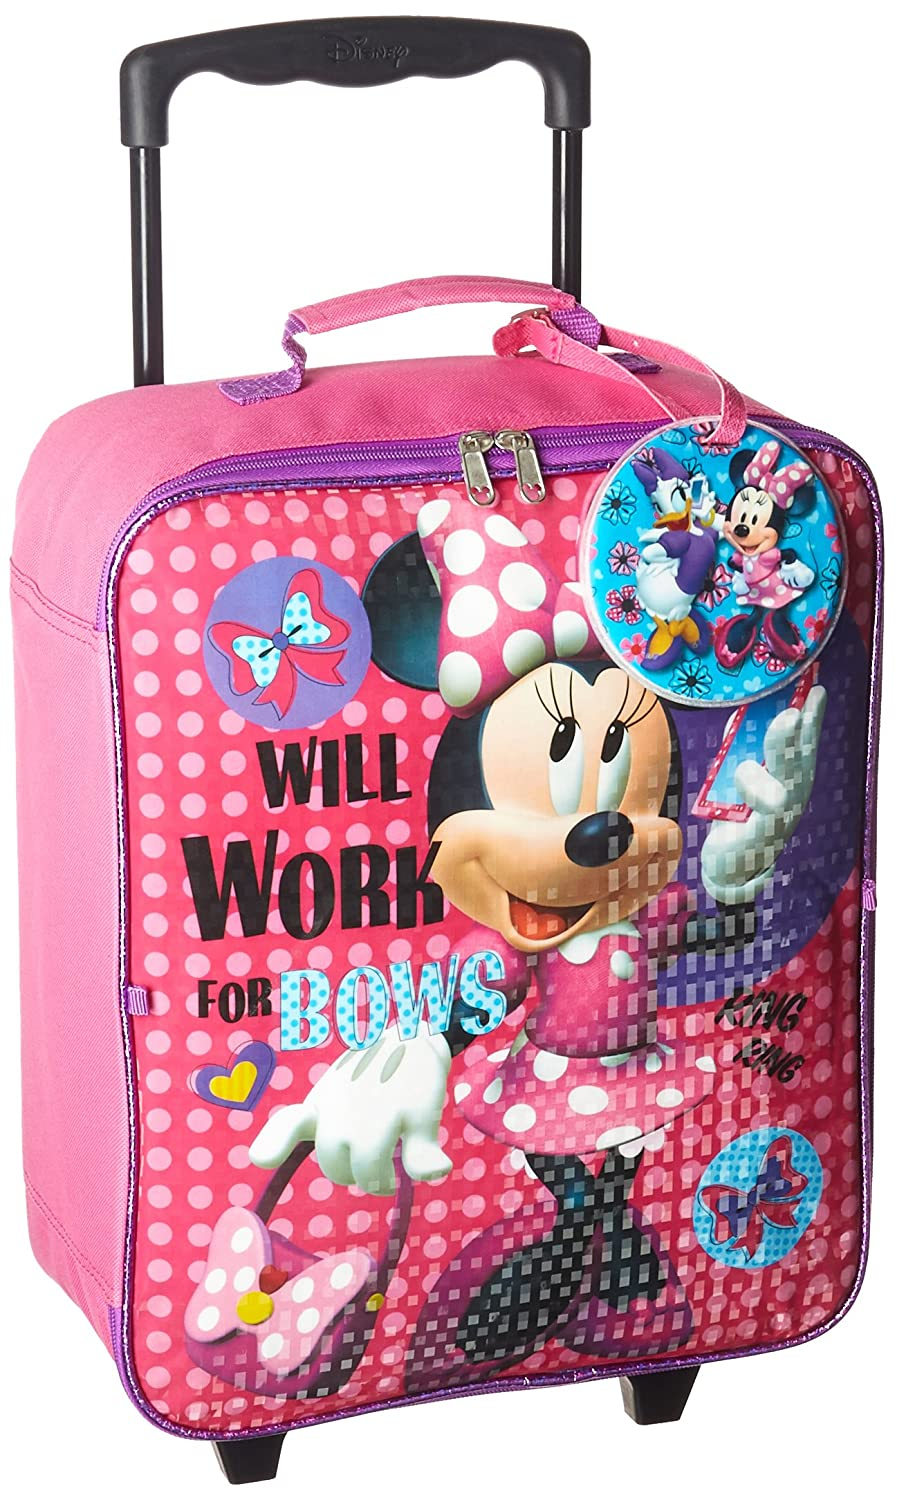 Disney Minnie 3 Pc Luggage Set Kid's Luggage, Pink